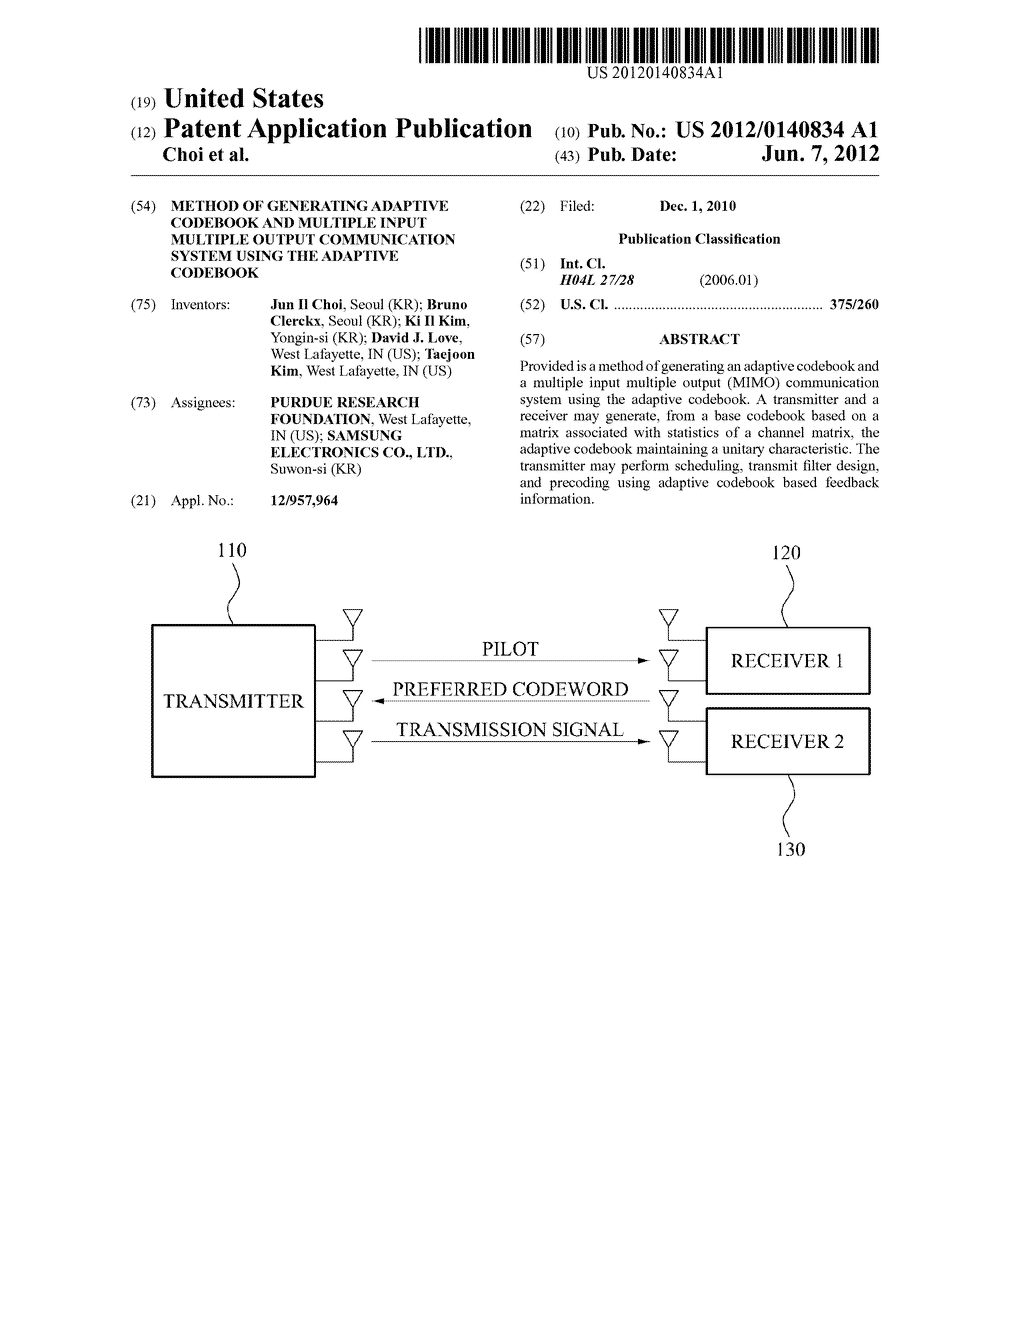 METHOD OF GENERATING ADAPTIVE CODEBOOK AND MULTIPLE INPUT MULTIPLE OUTPUT     COMMUNICATION SYSTEM USING THE ADAPTIVE CODEBOOK - diagram, schematic, and image 01